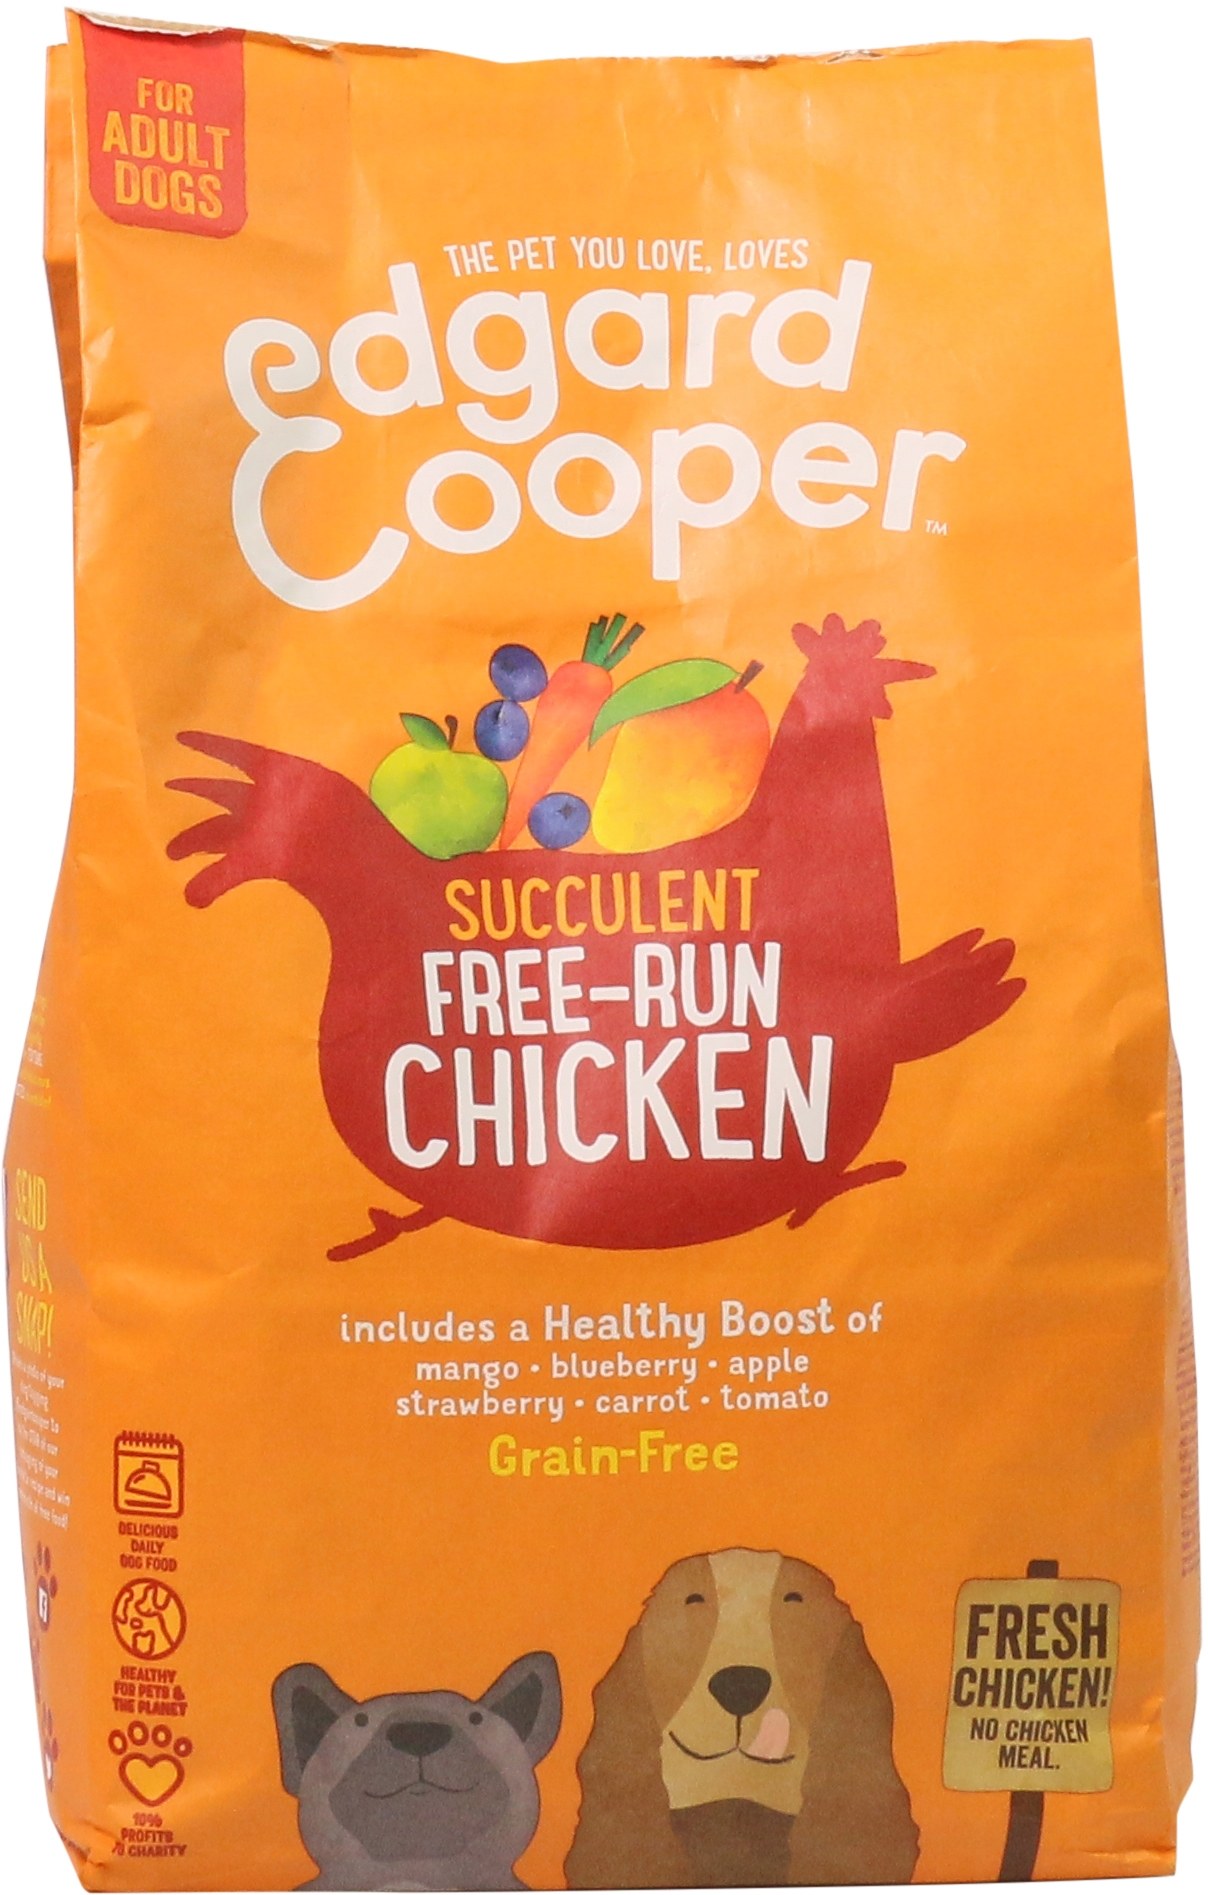 FOR ADULT DOGS FREE-RUN  CHICKEN (GRAIN-FREE)